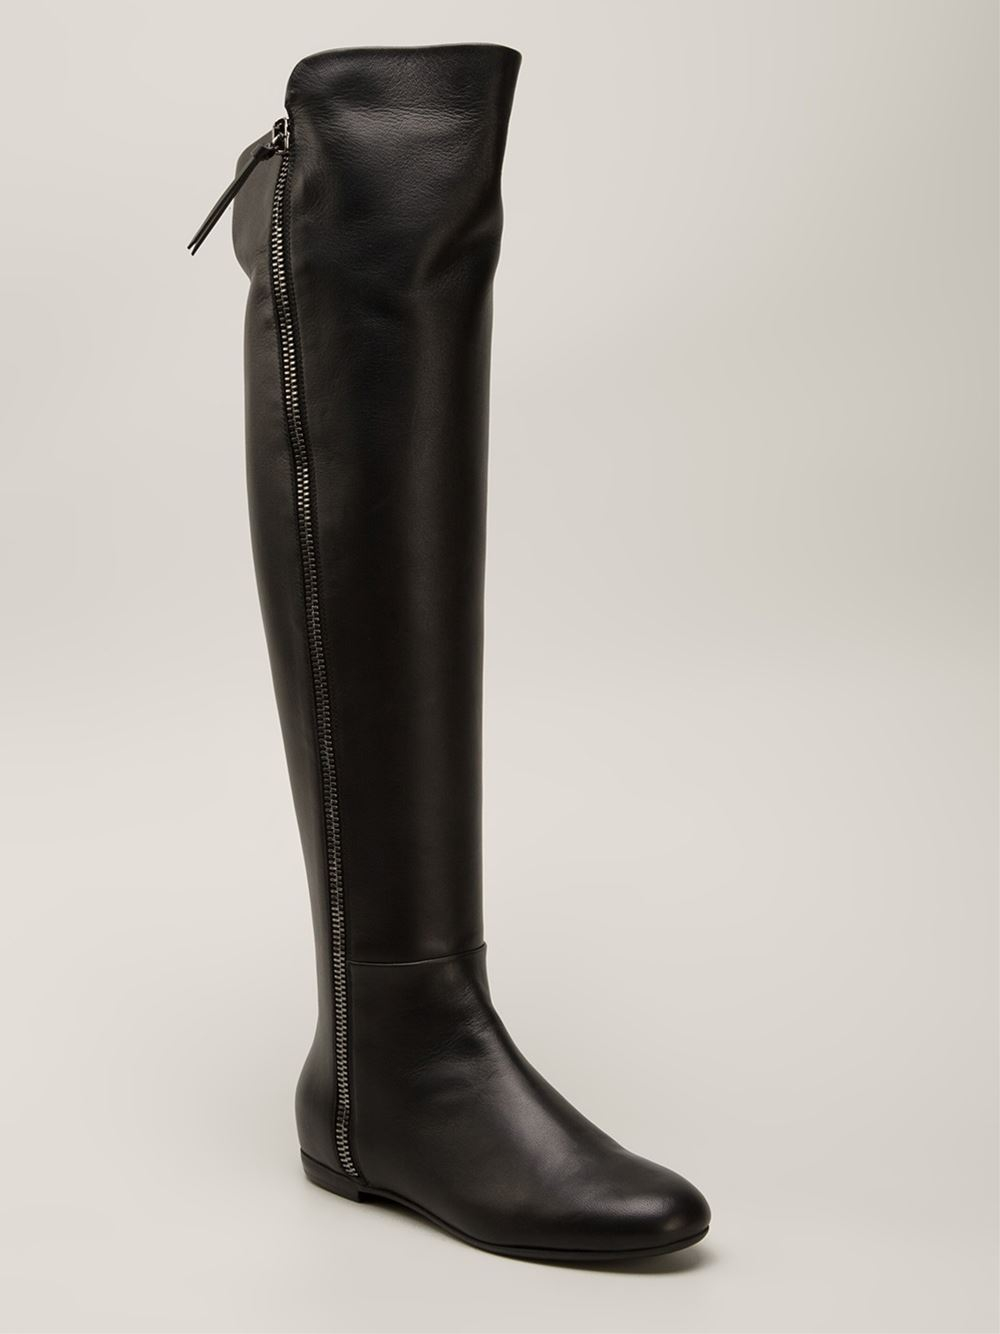 100% authentic cheap price discount visit new Giuseppe Zanotti Knee-High Leather Boots clearance find great outlet pay with paypal sale Manchester s2dqpun